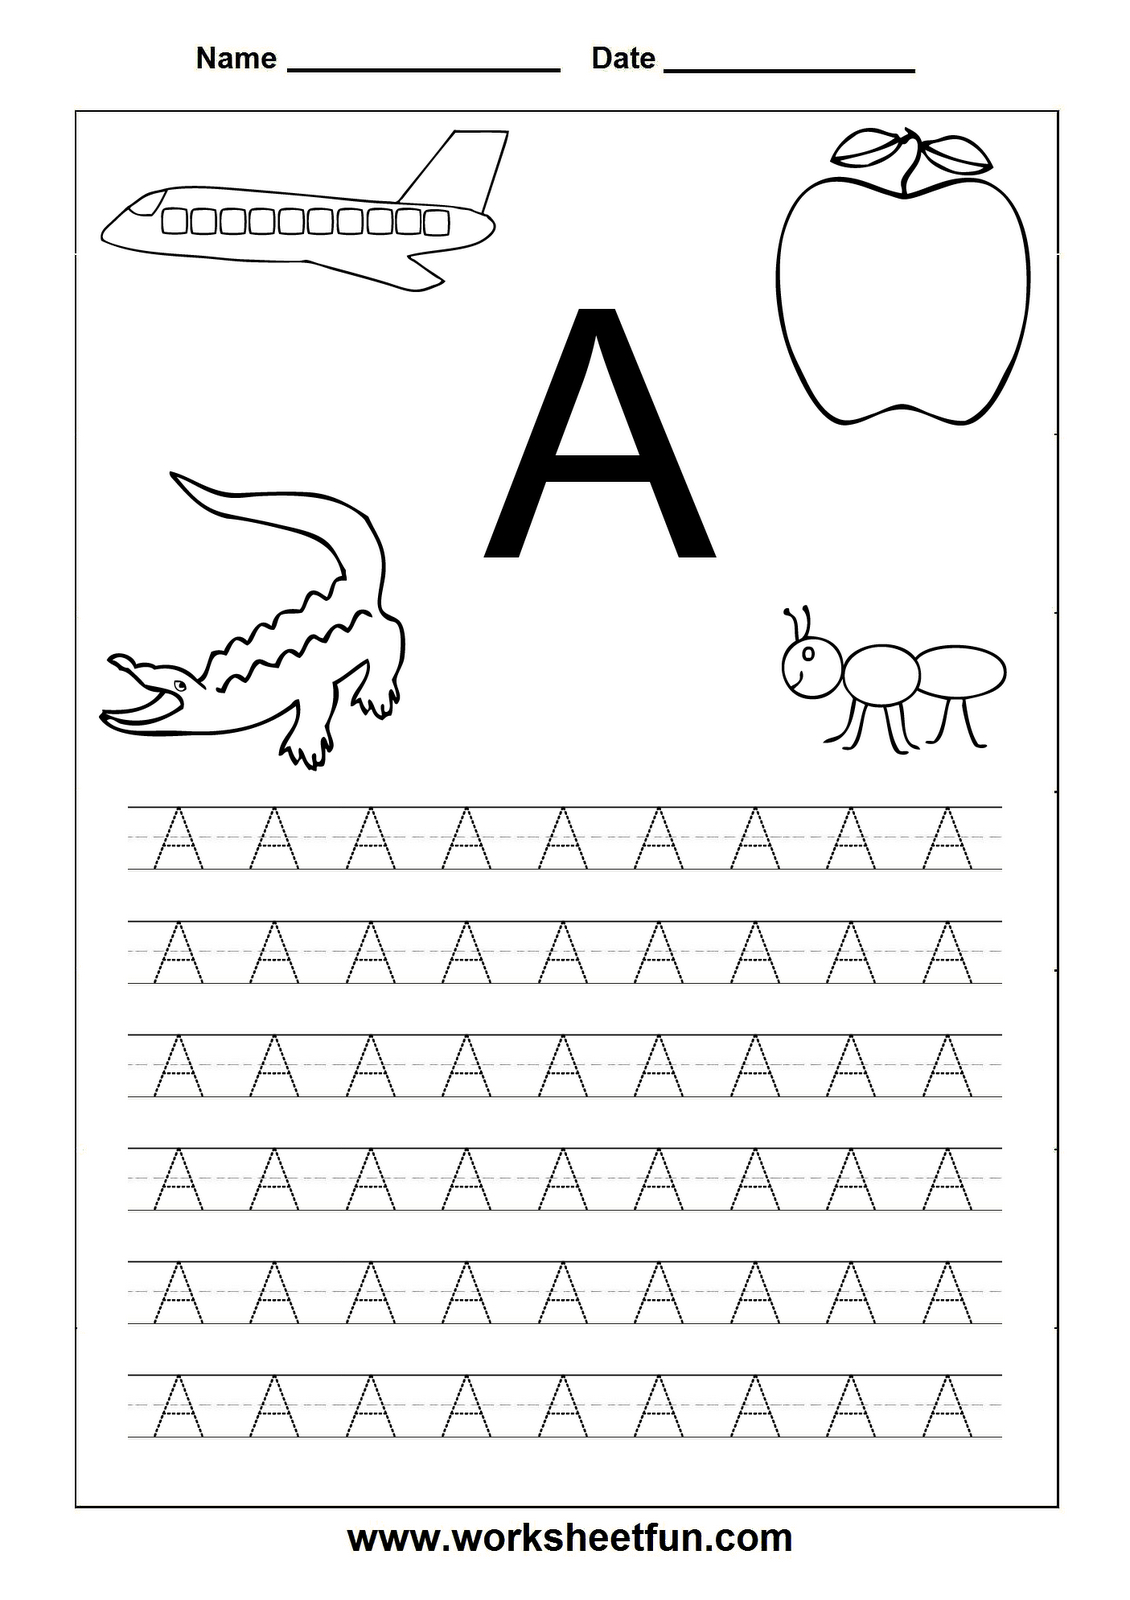 Alphabet Worksheets Free Printables | Letter Tracing inside Free Printable Pre-K Alphabet Worksheets